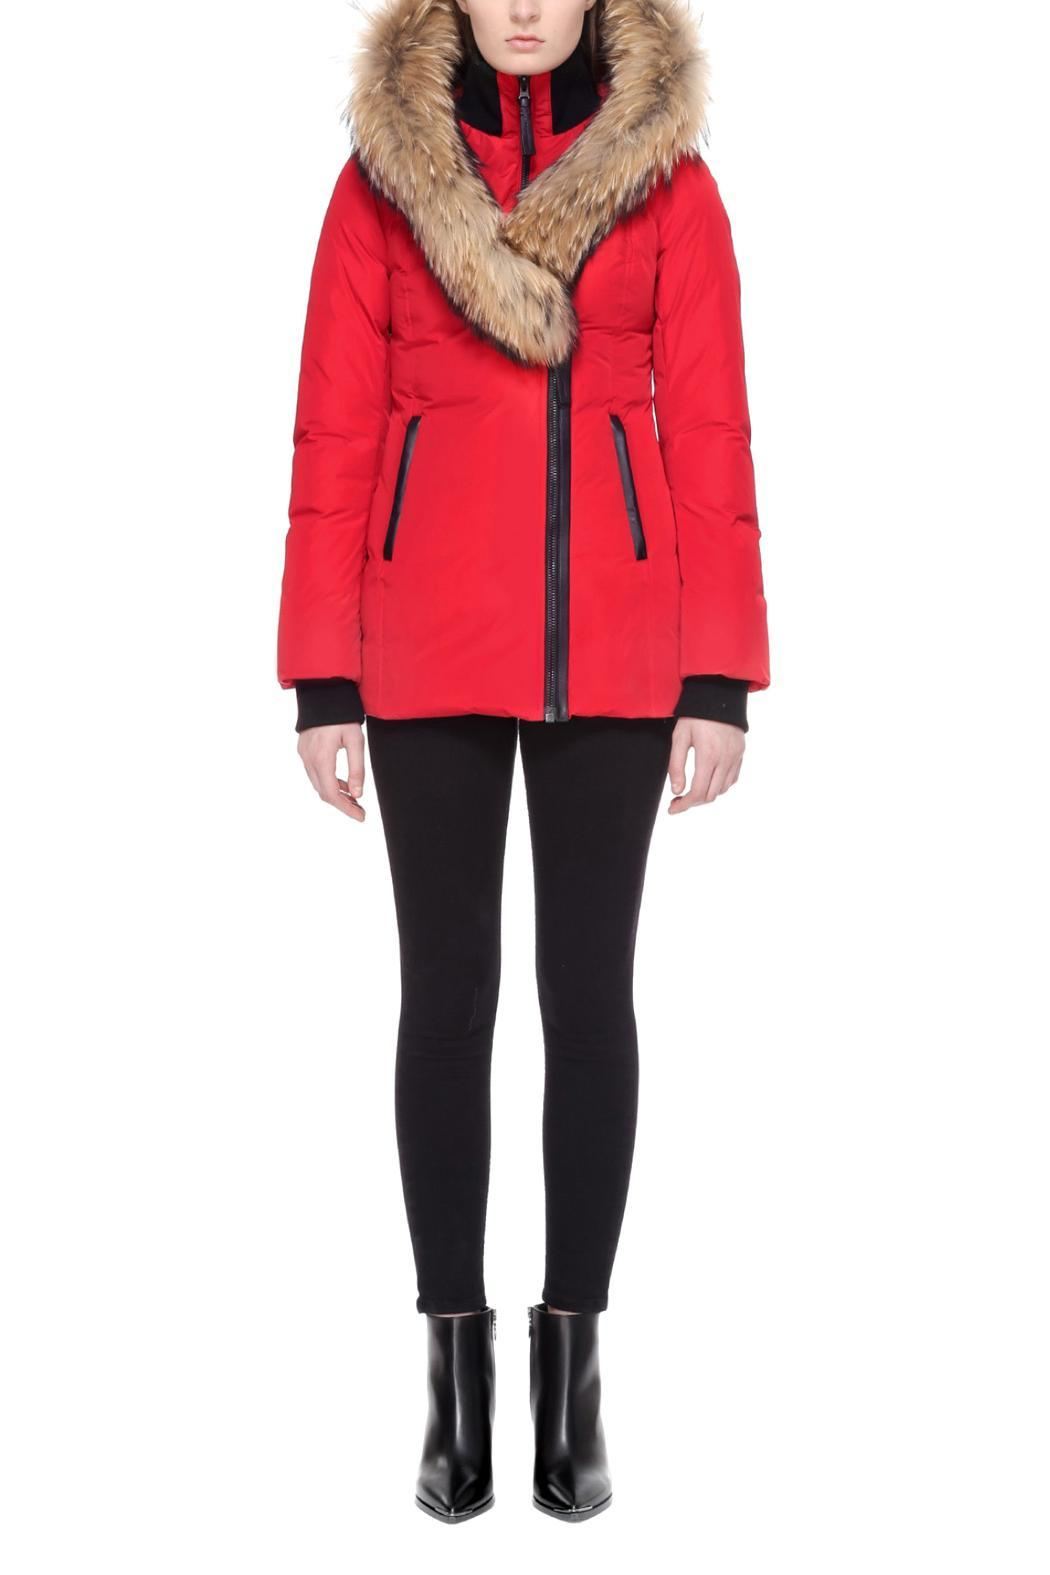 Mackage Adali Red Coat - Main Image